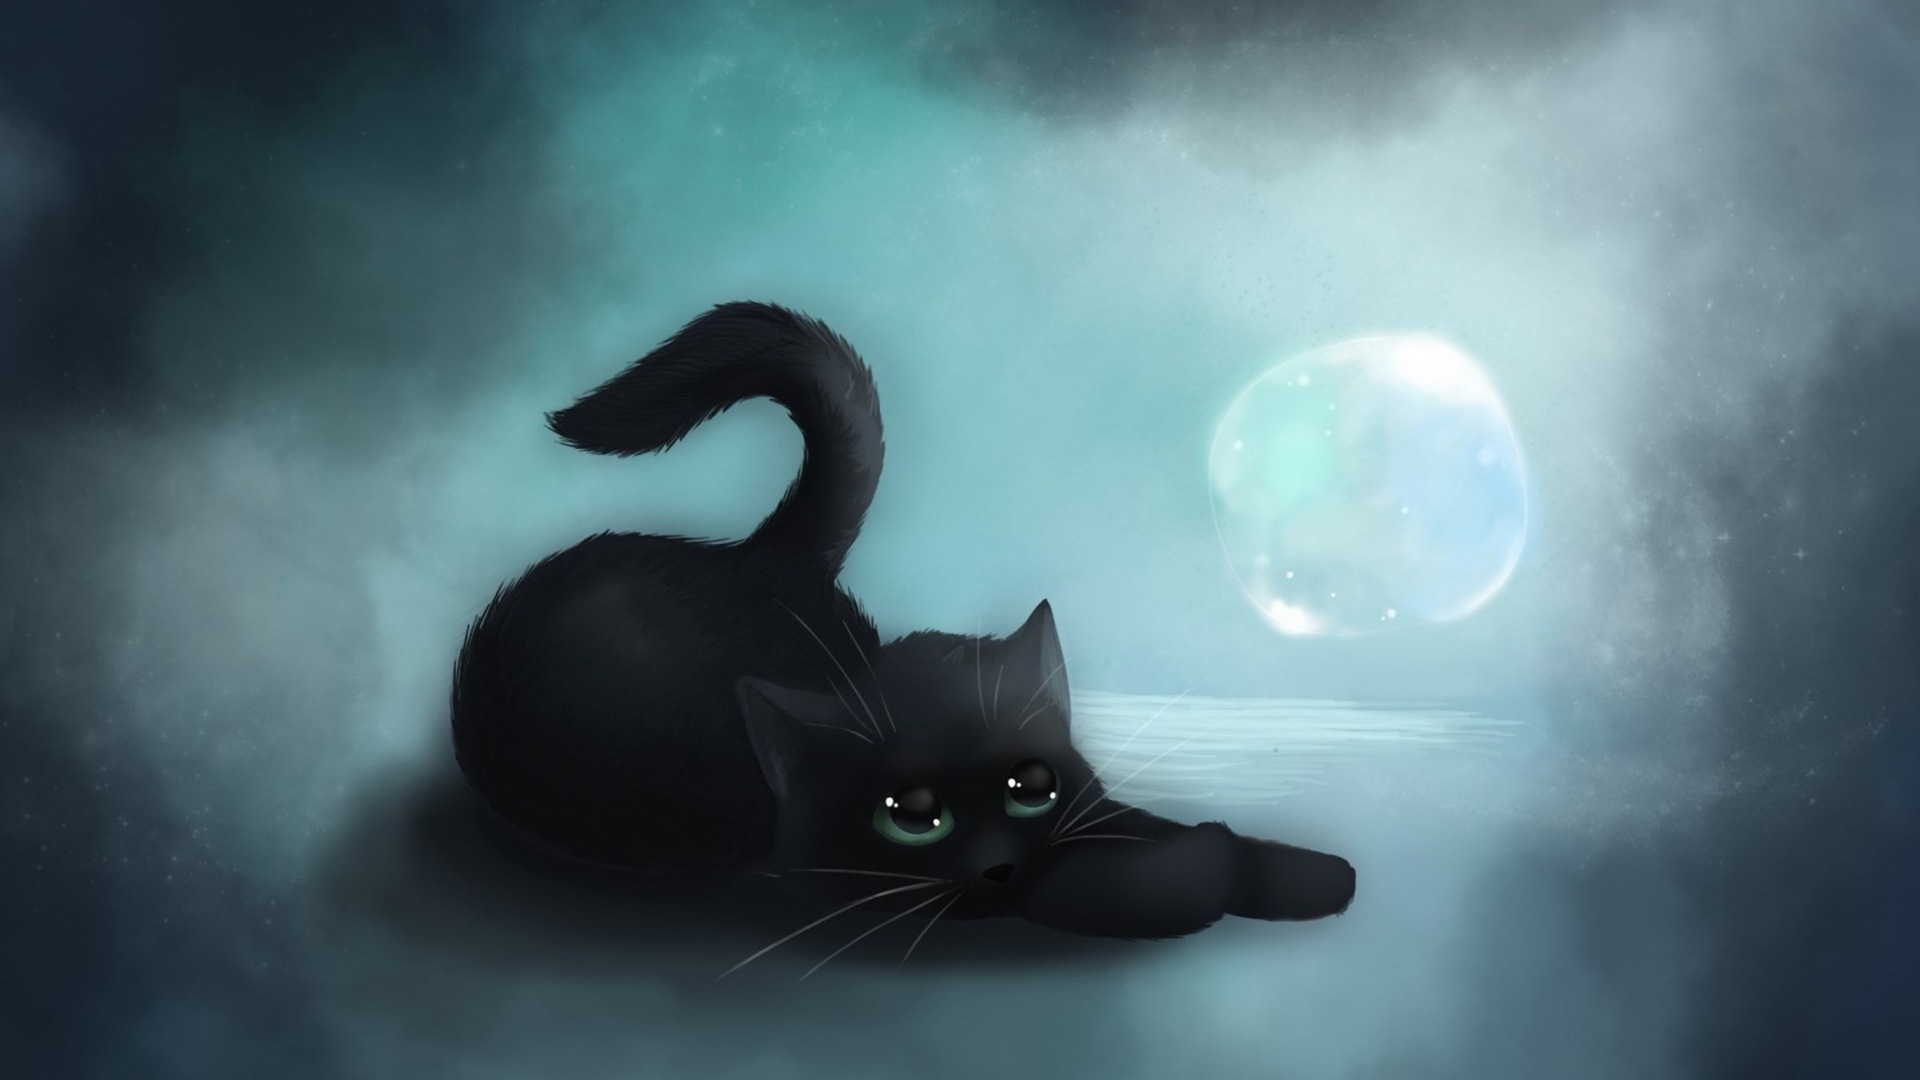 49 492089 3d cat hd desktop wallpaper cat art with